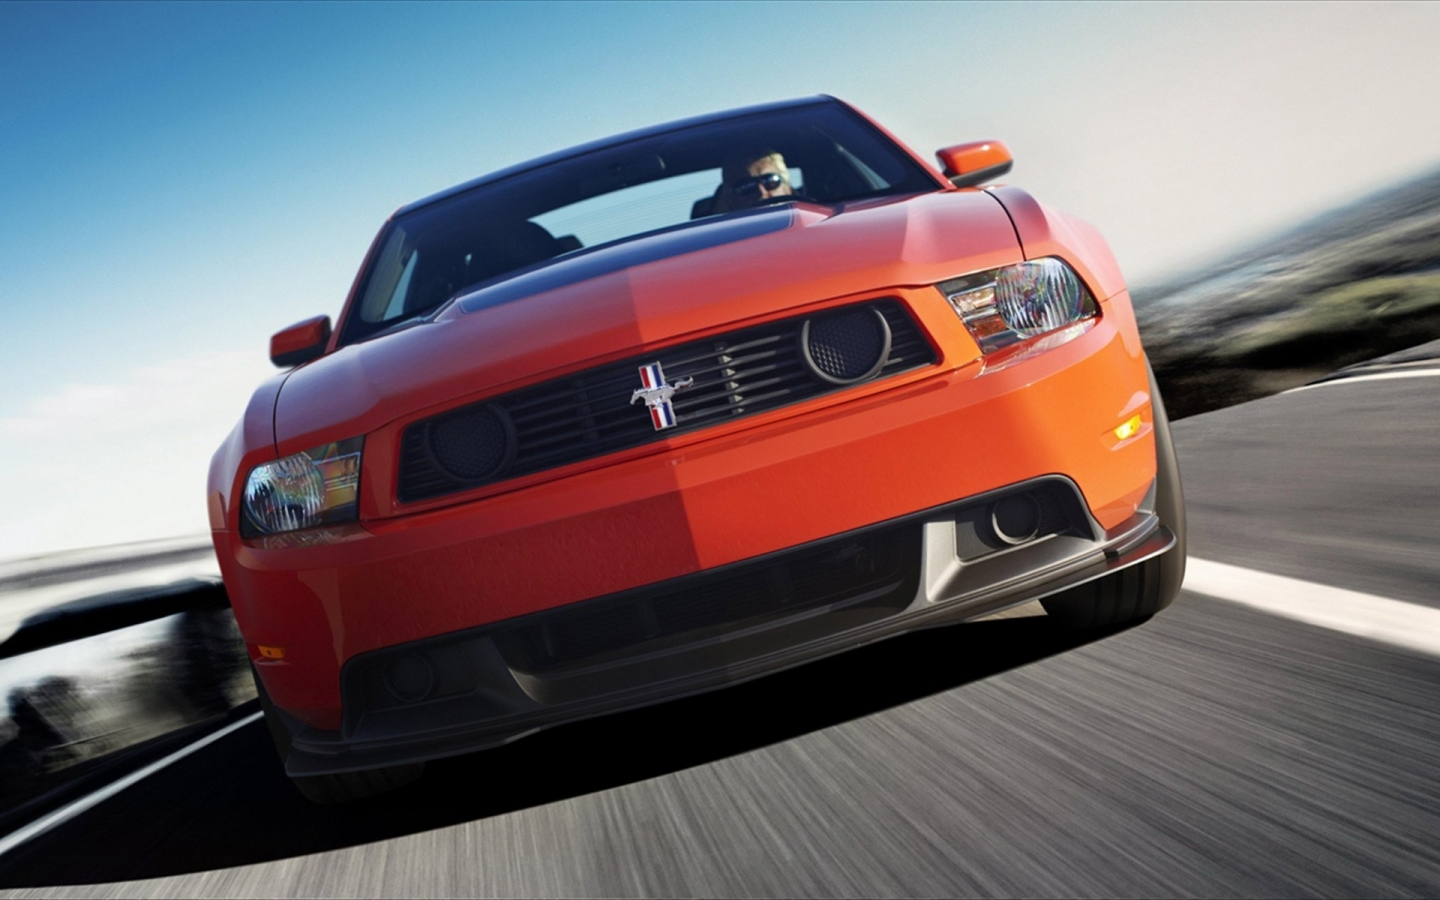 Ford Mustang Boss 302 - 1440x900